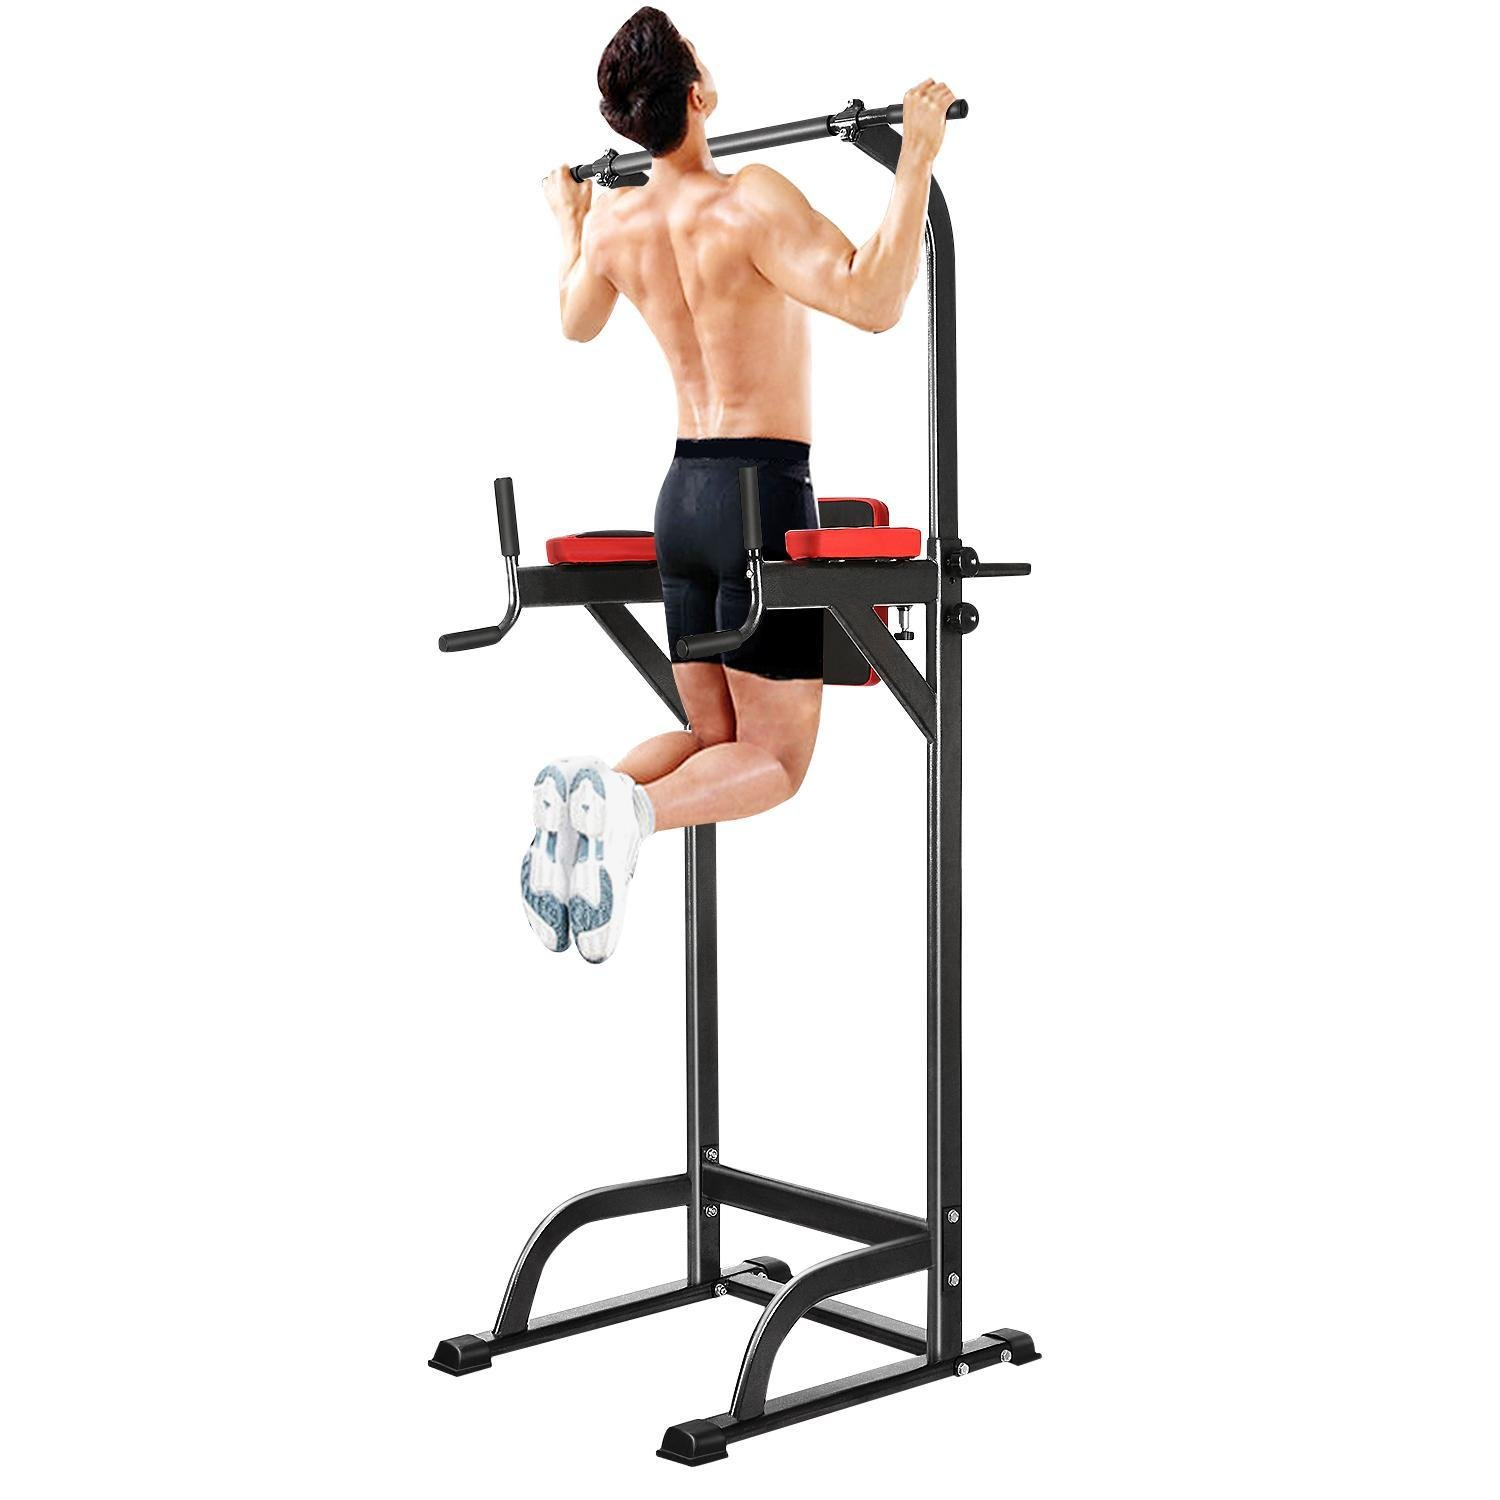 Adjustable Pull Up Chin Up Bar,Pull Up Stand Power Tower Strength Power Tower Fitness Workout Station